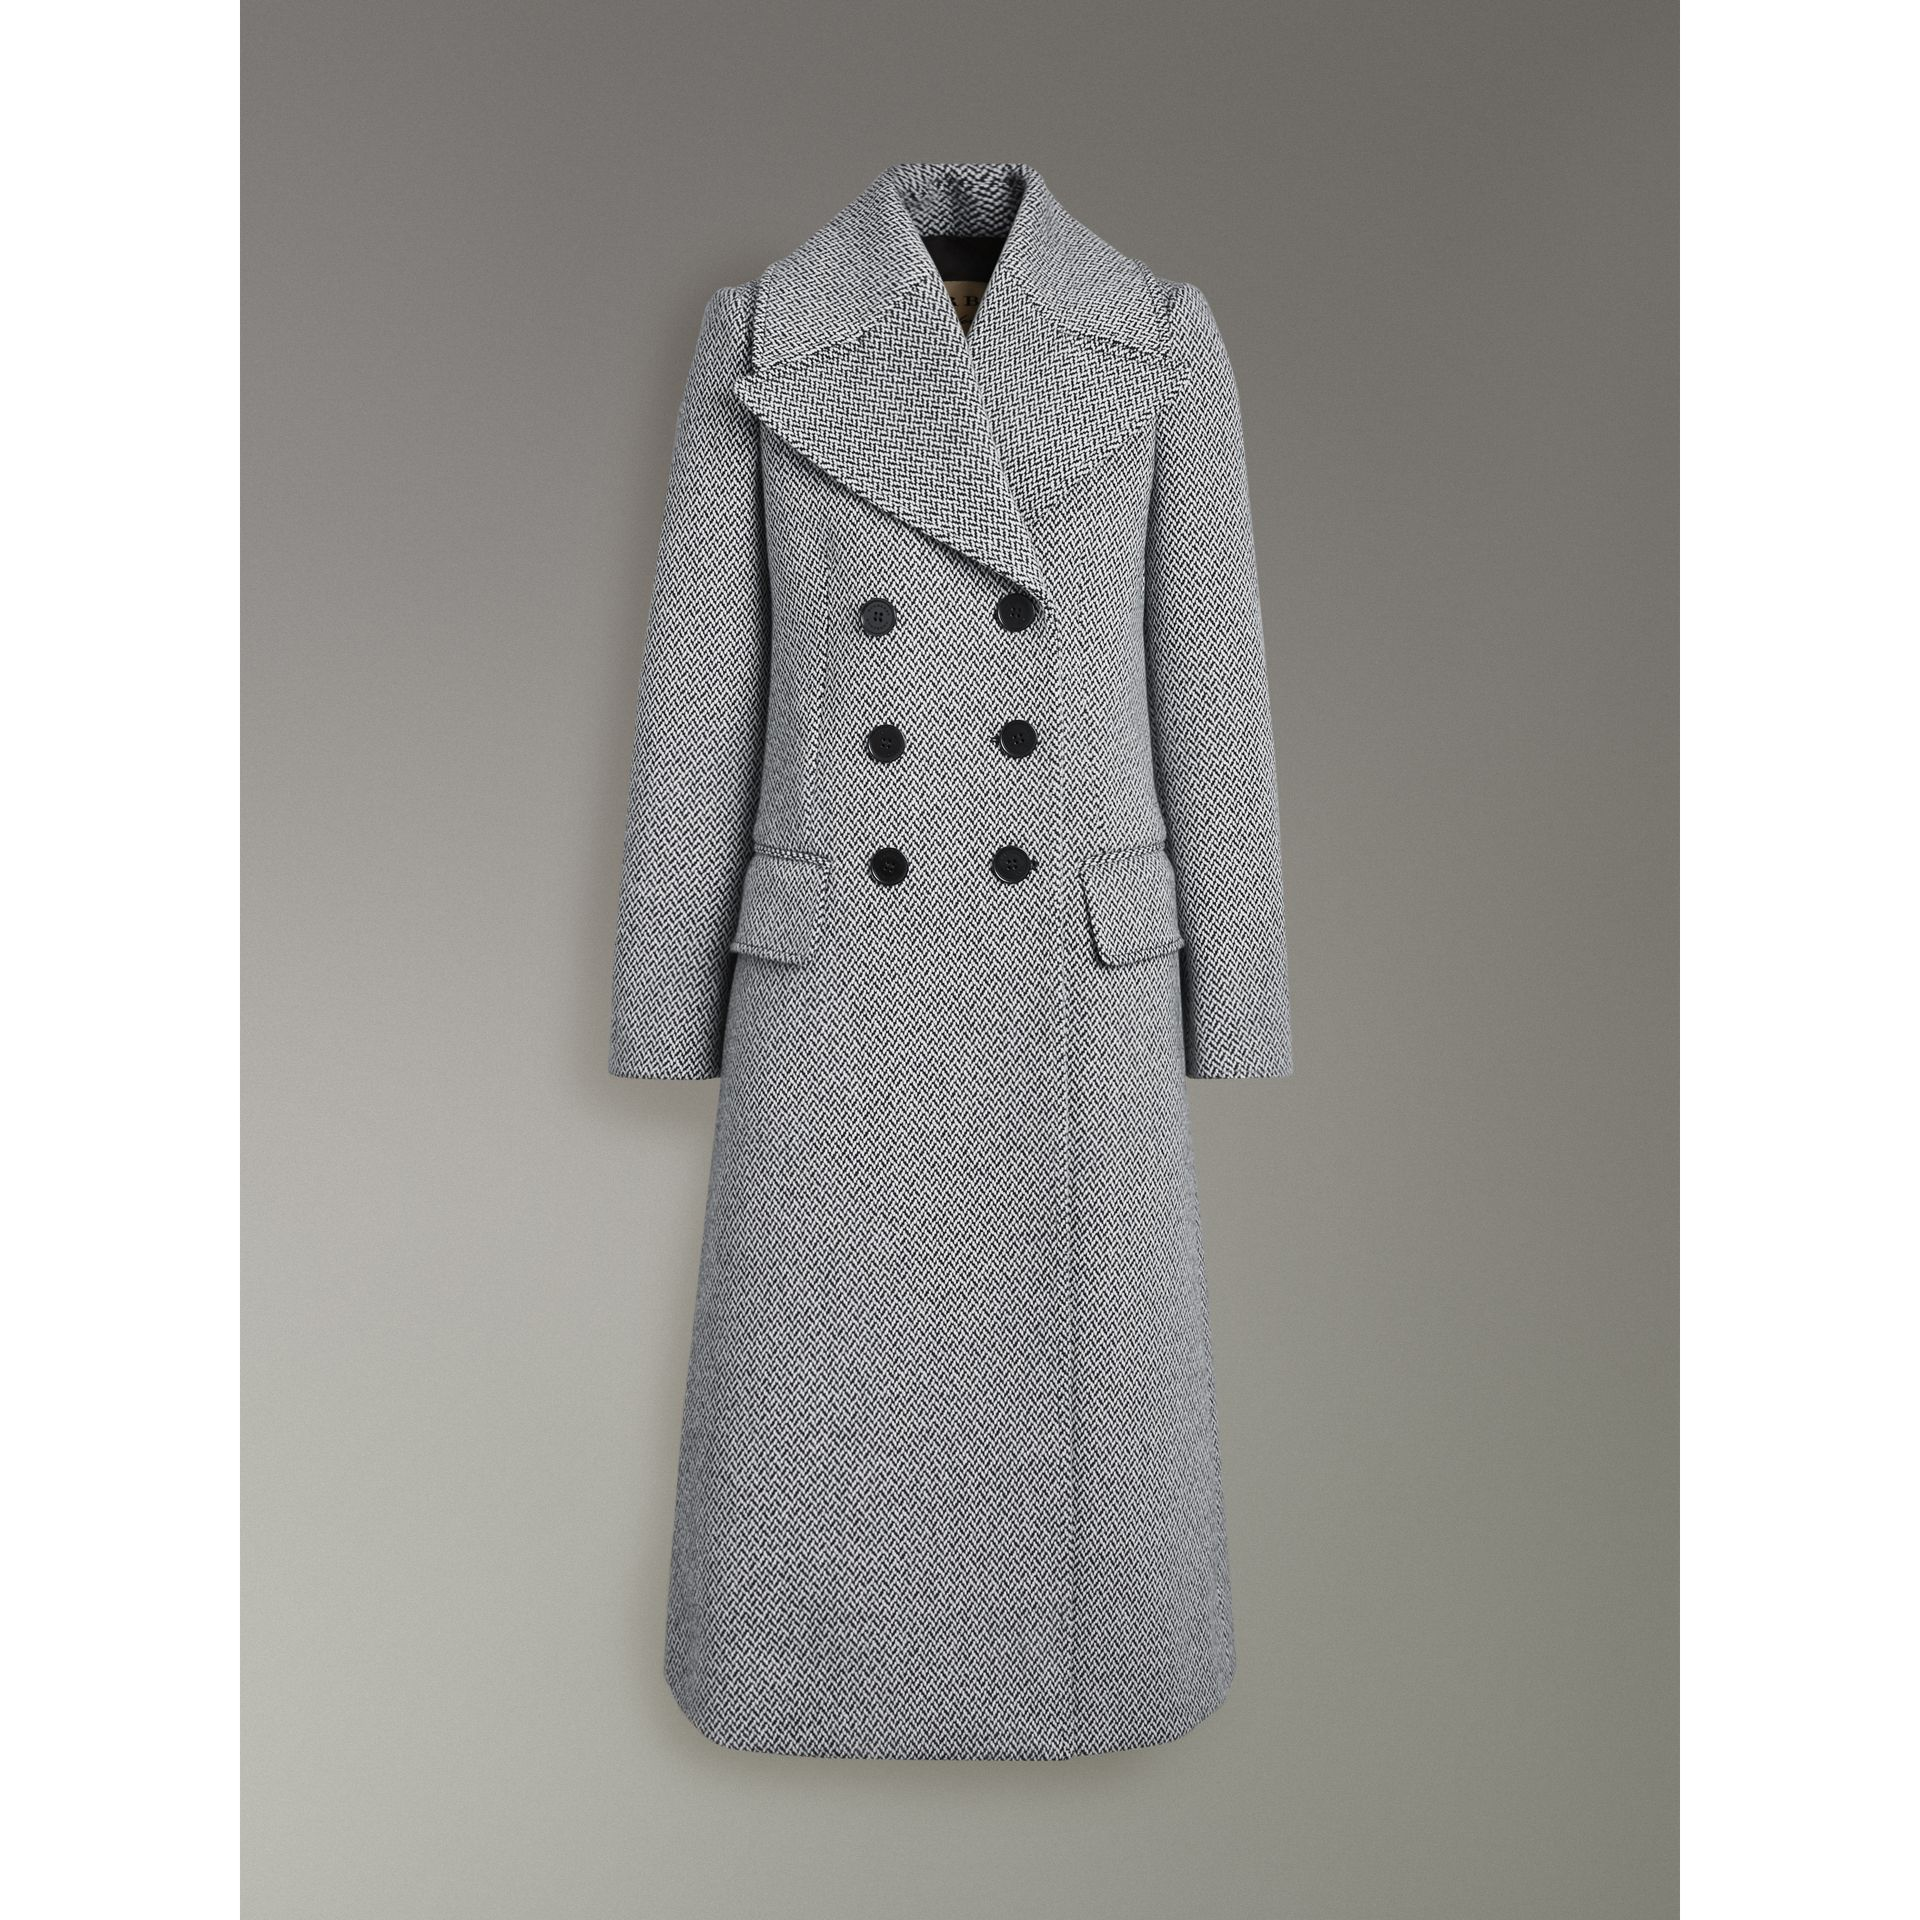 Herringbone Wool Blend Tailored Coat in Black/white - Women | Burberry United States - gallery image 3